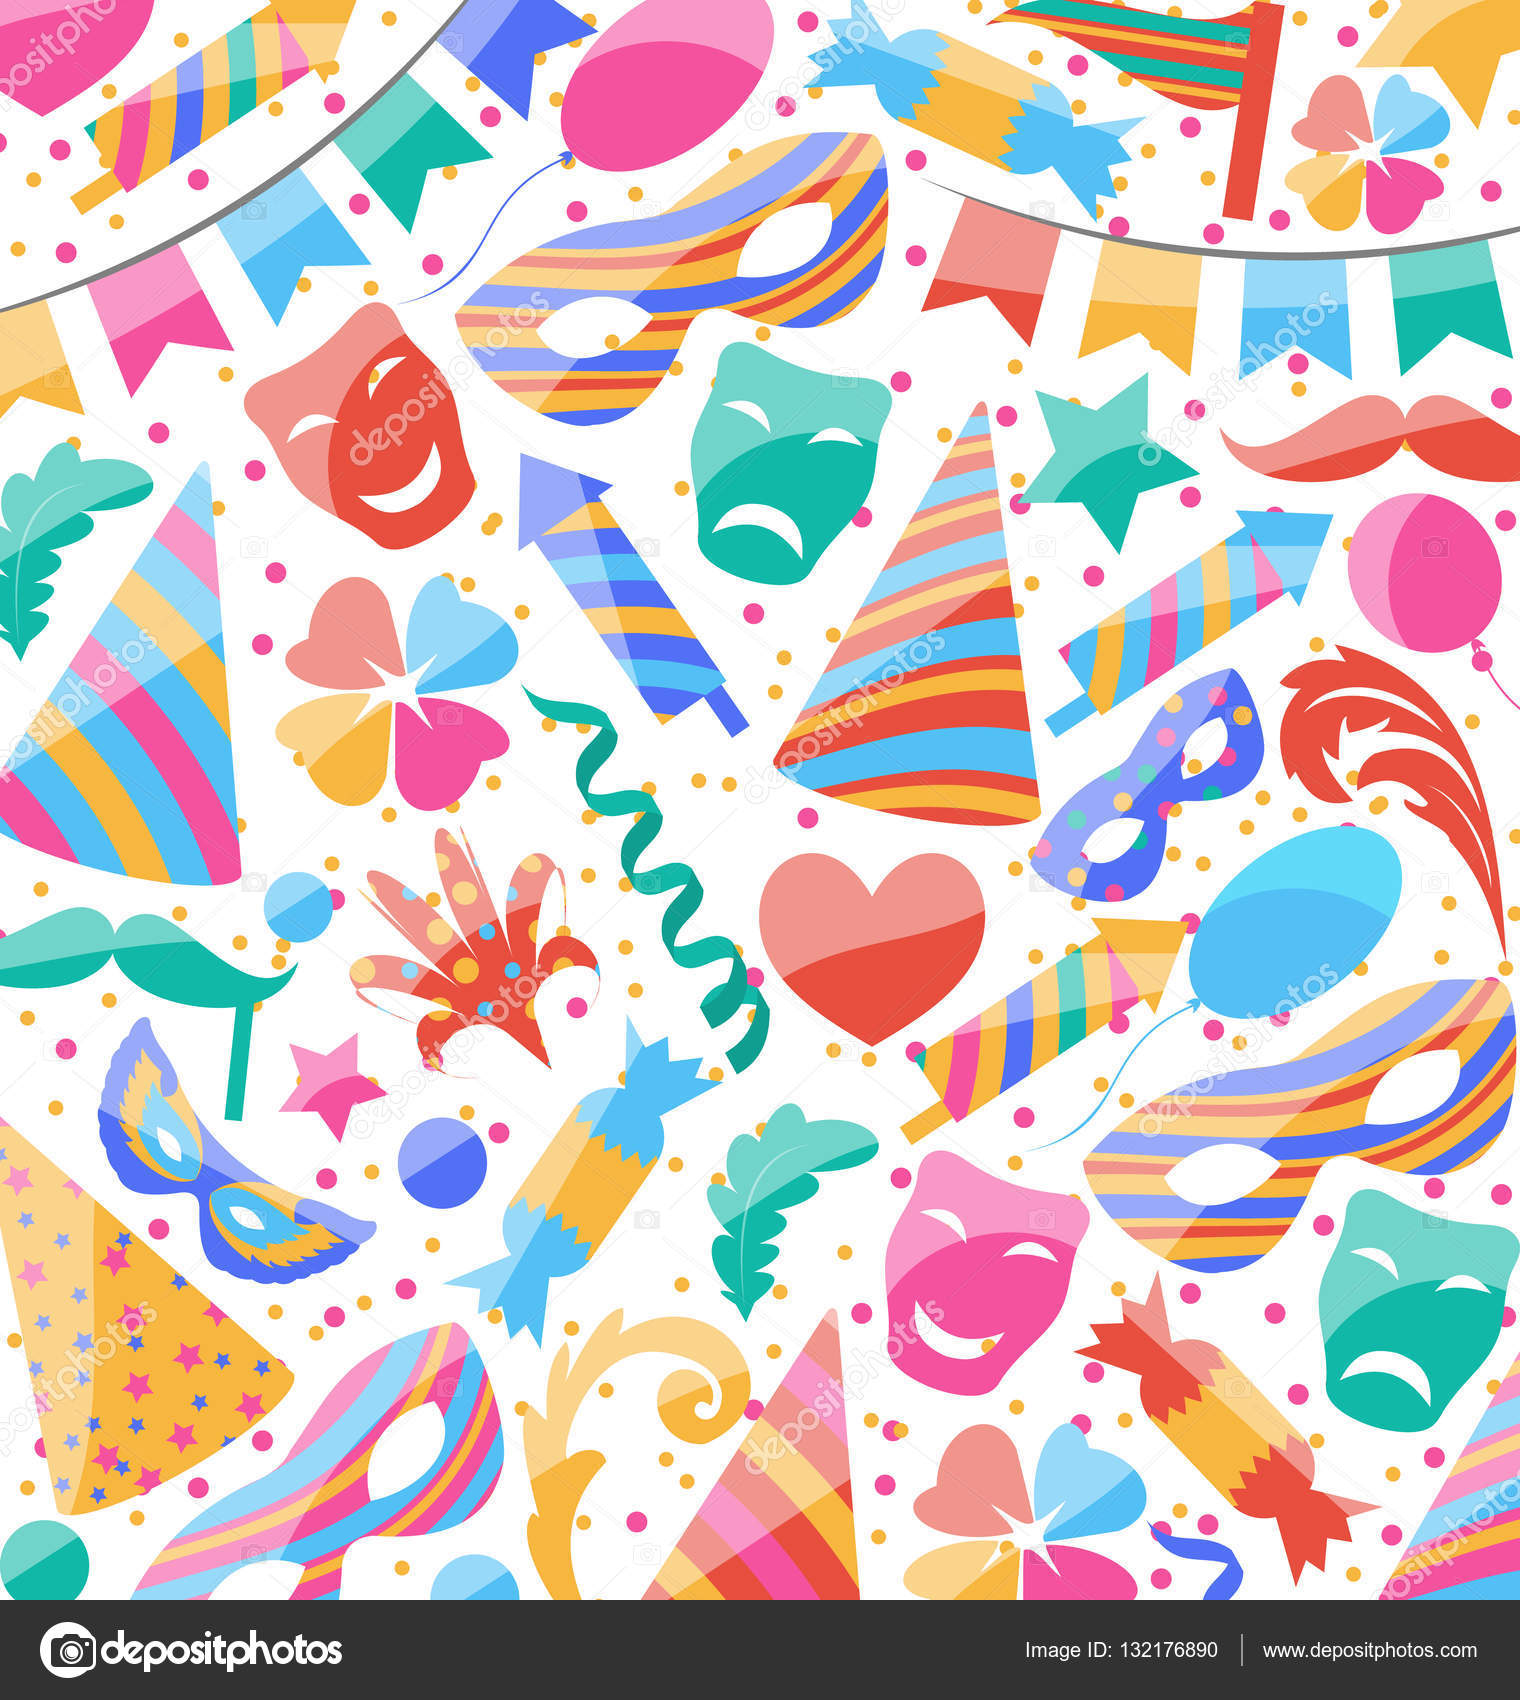 Obj Wallpaper Festive Wallpaper With Carnival And Party